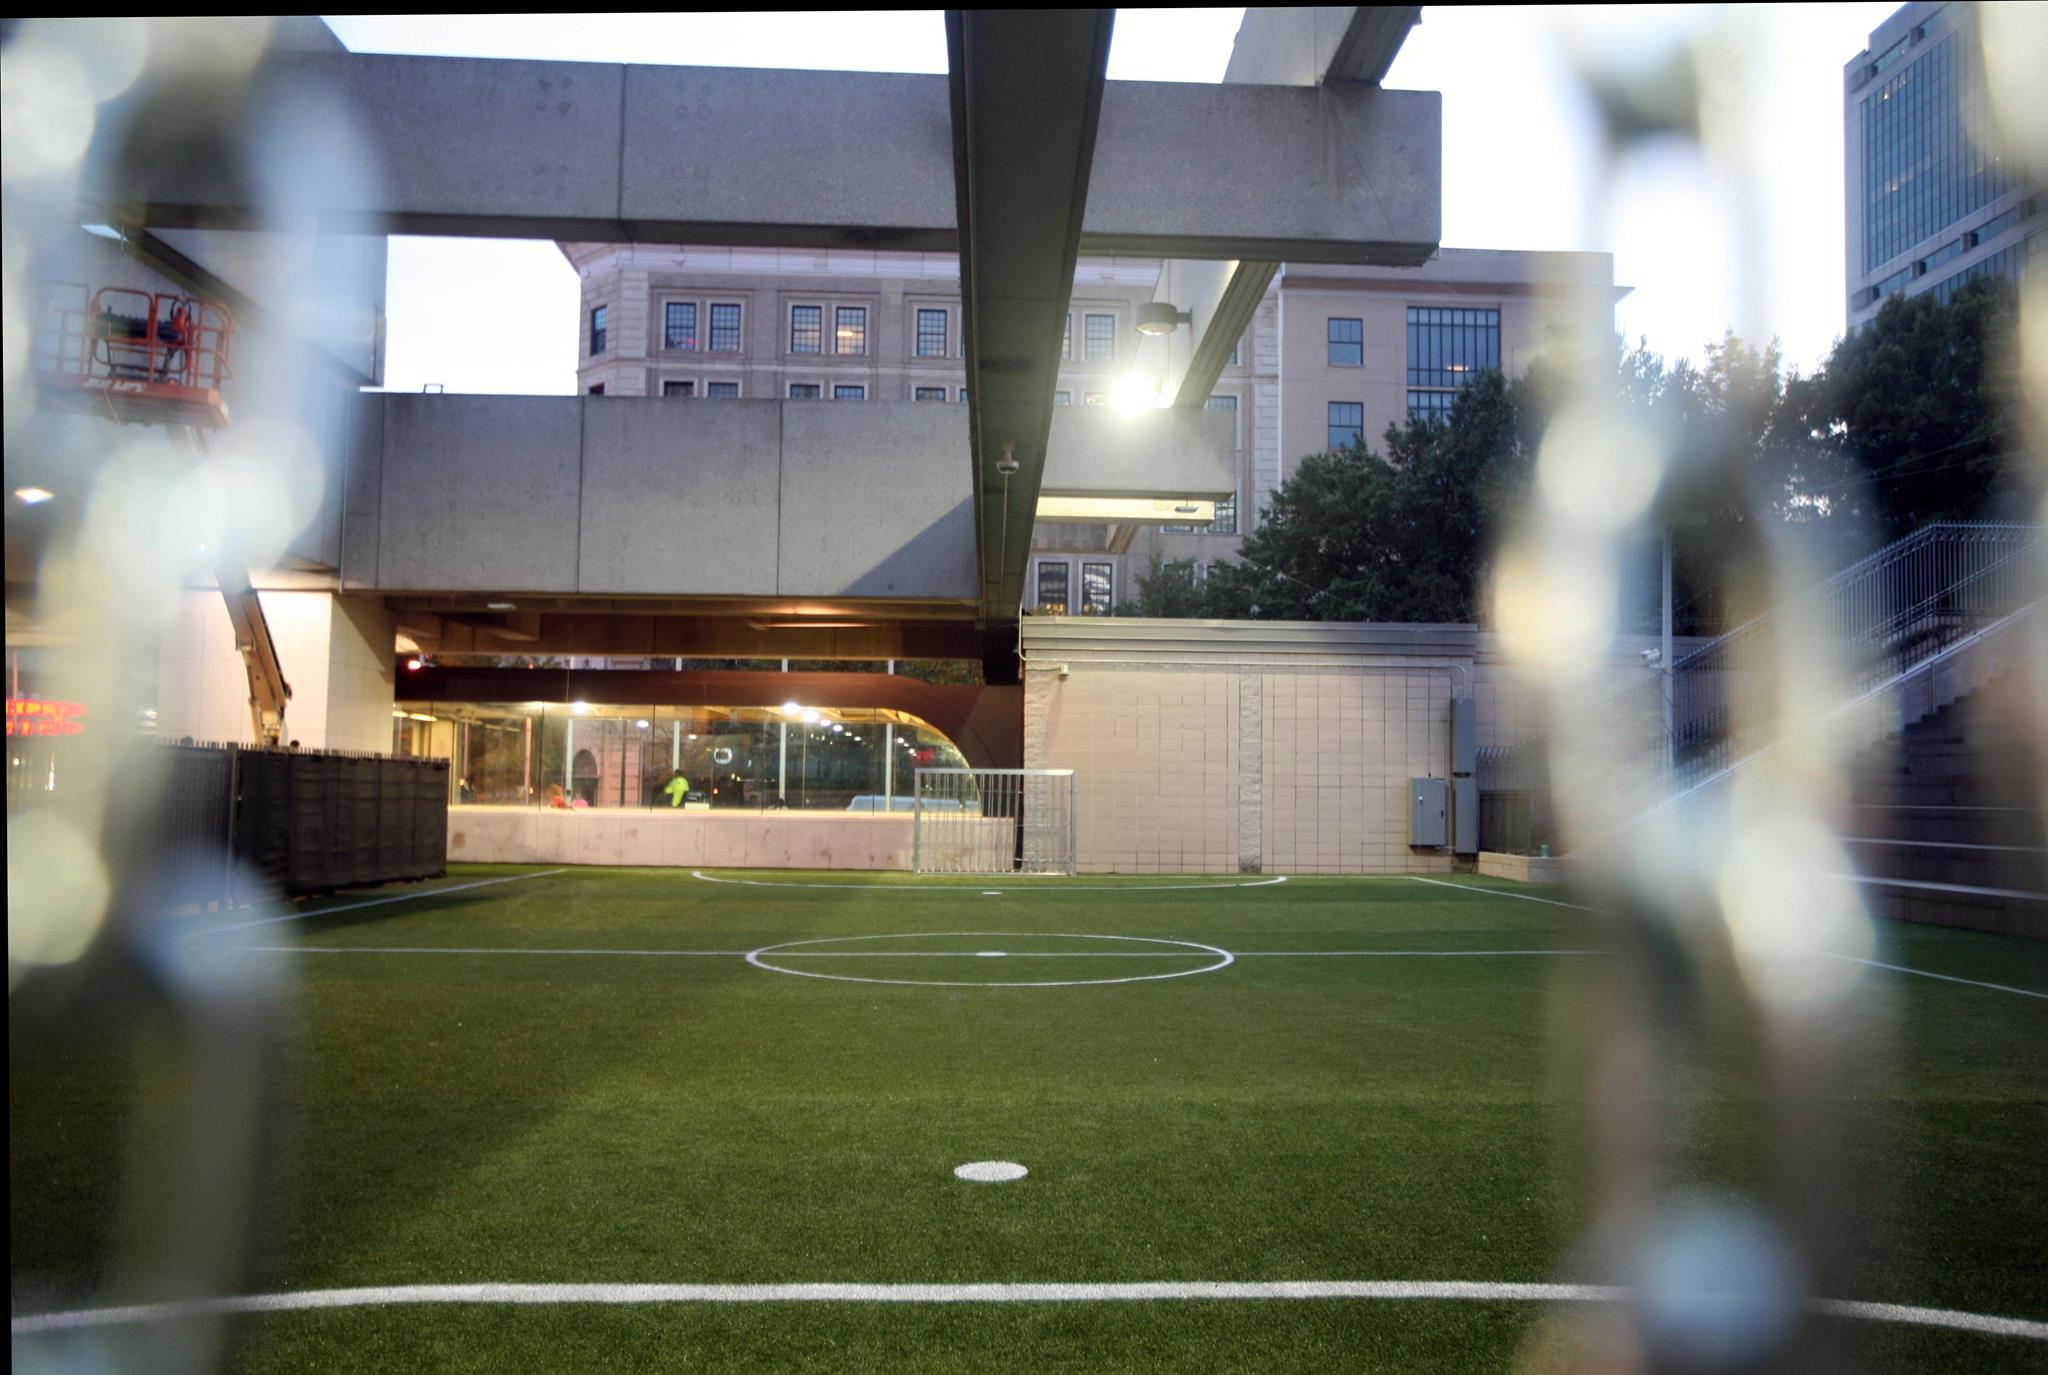 Station Soccer Field View